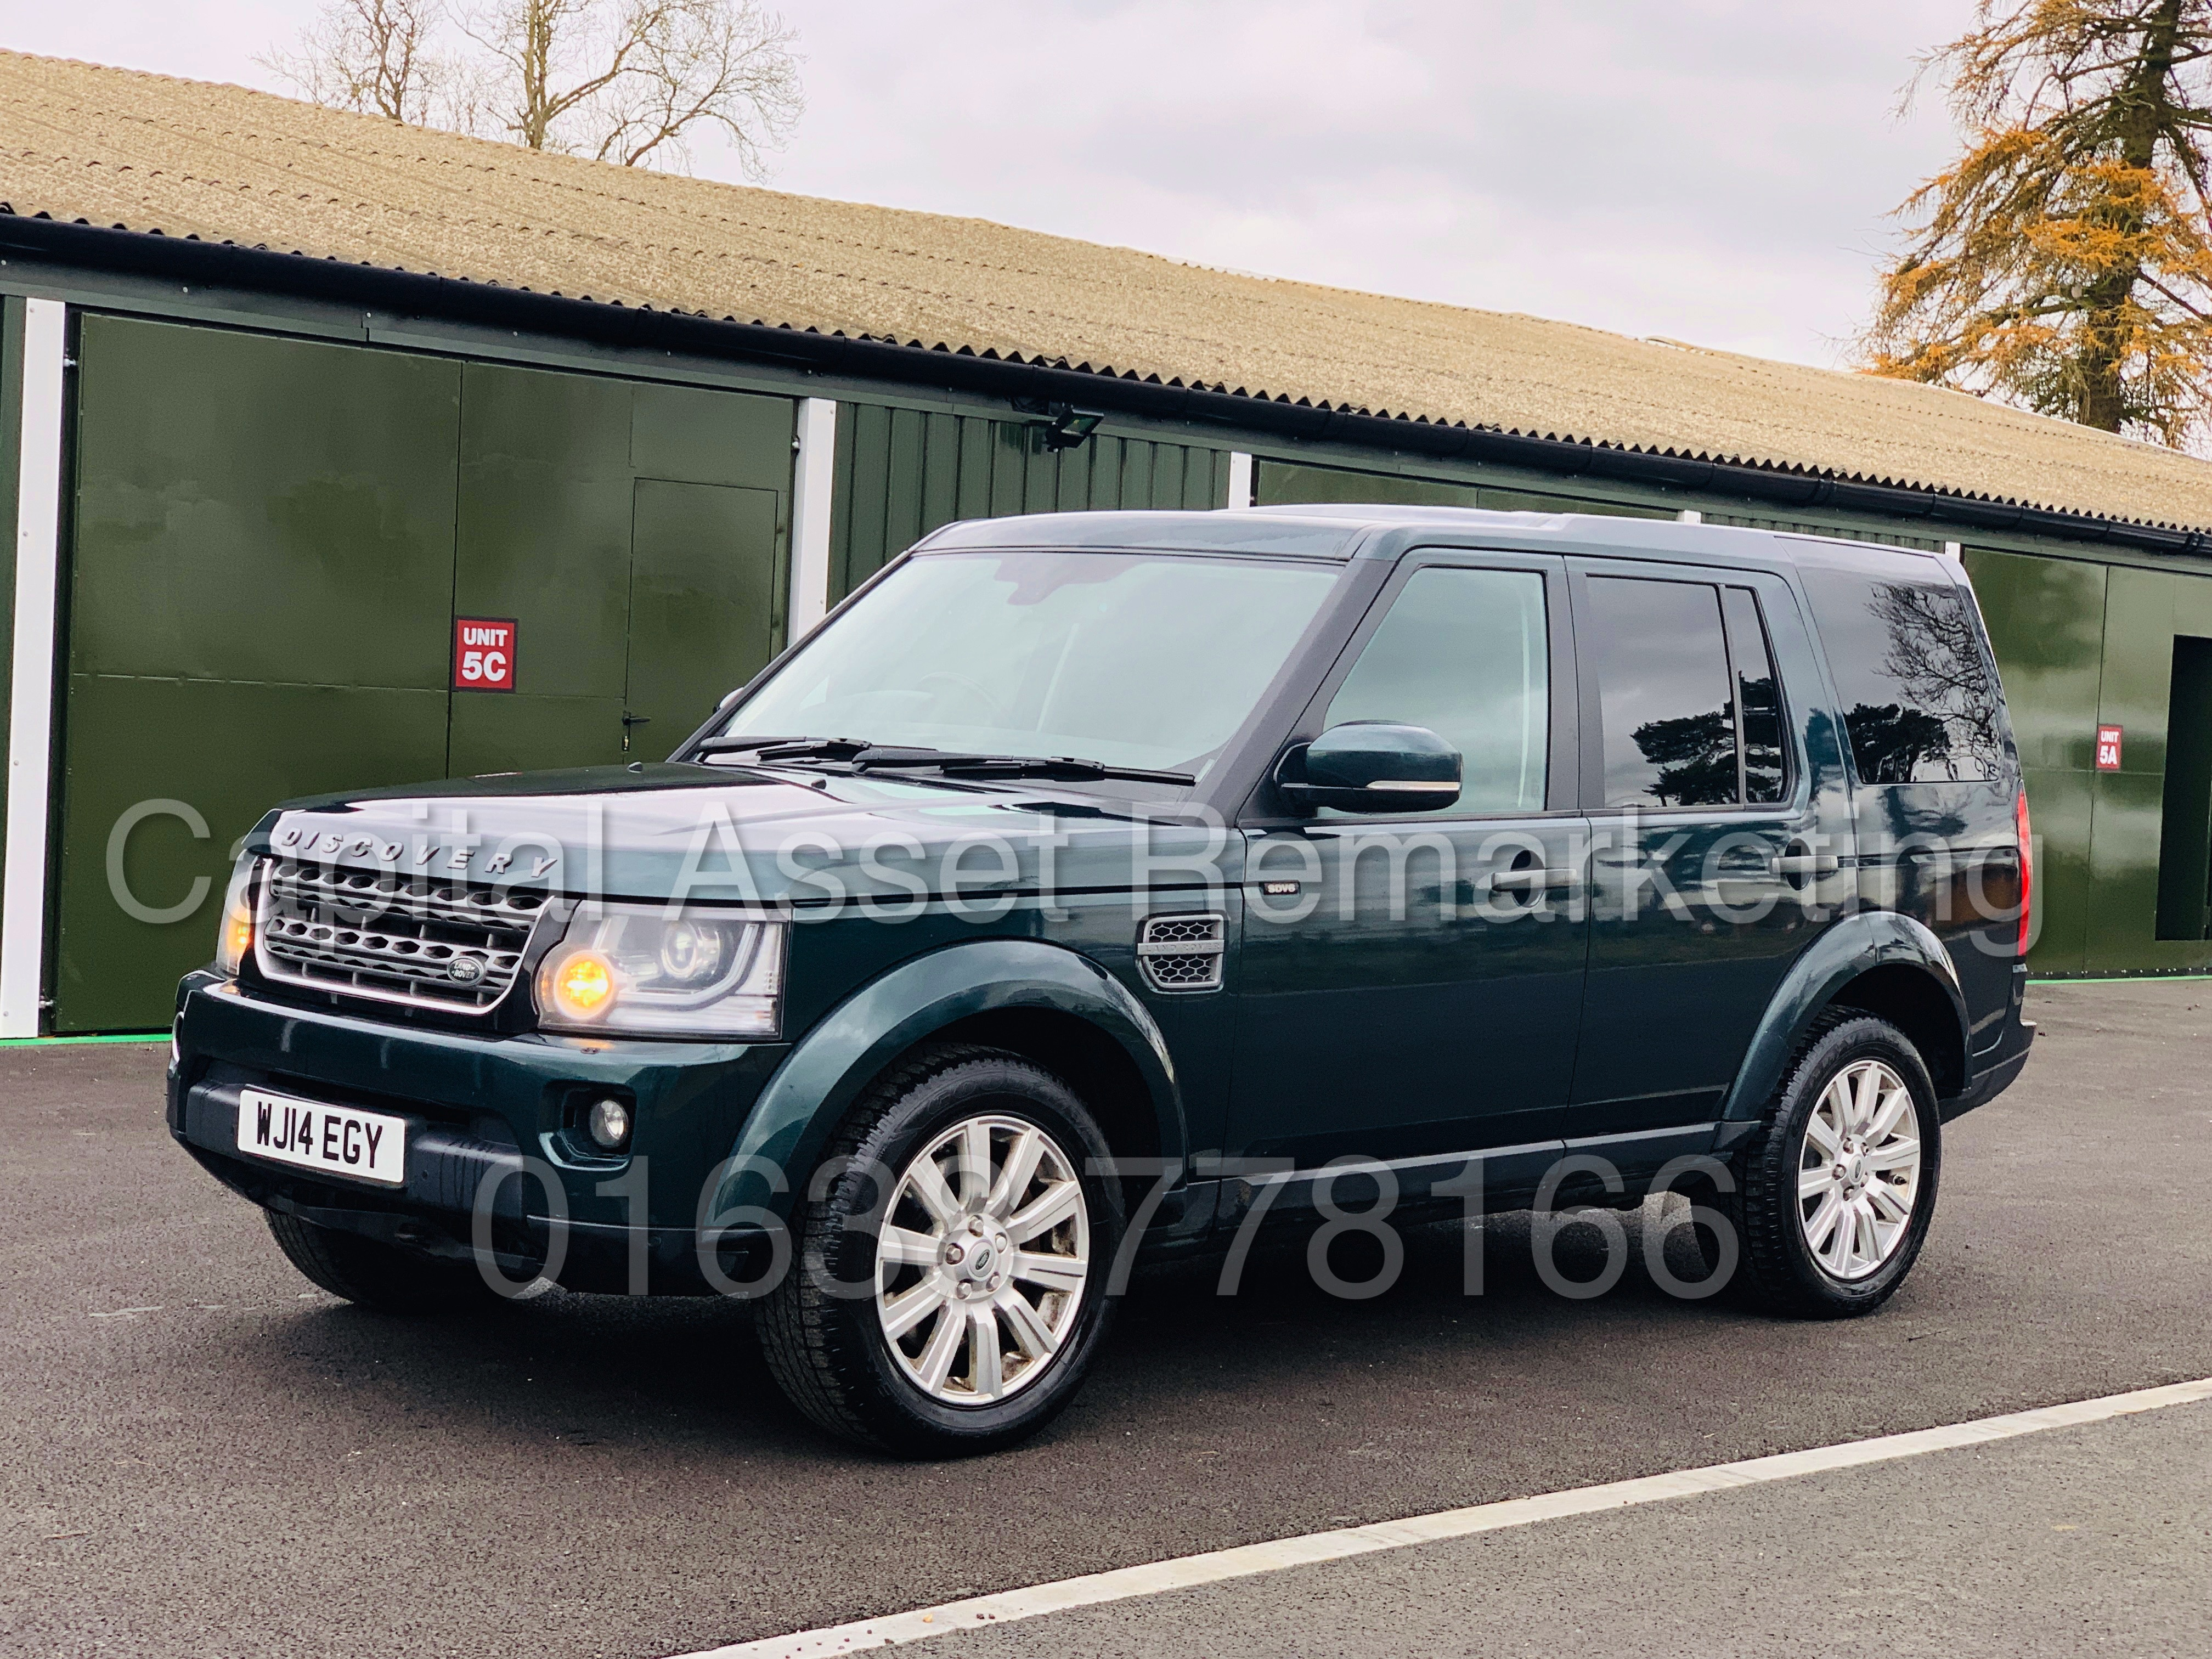 Los 5 - LAND ROVER DISCOVERY 4 *XS EDITION* UTILITY COMMERCIAL (2014) '3.0 SDV6 - 8 SPEED AUTO' *TOP SPEC*